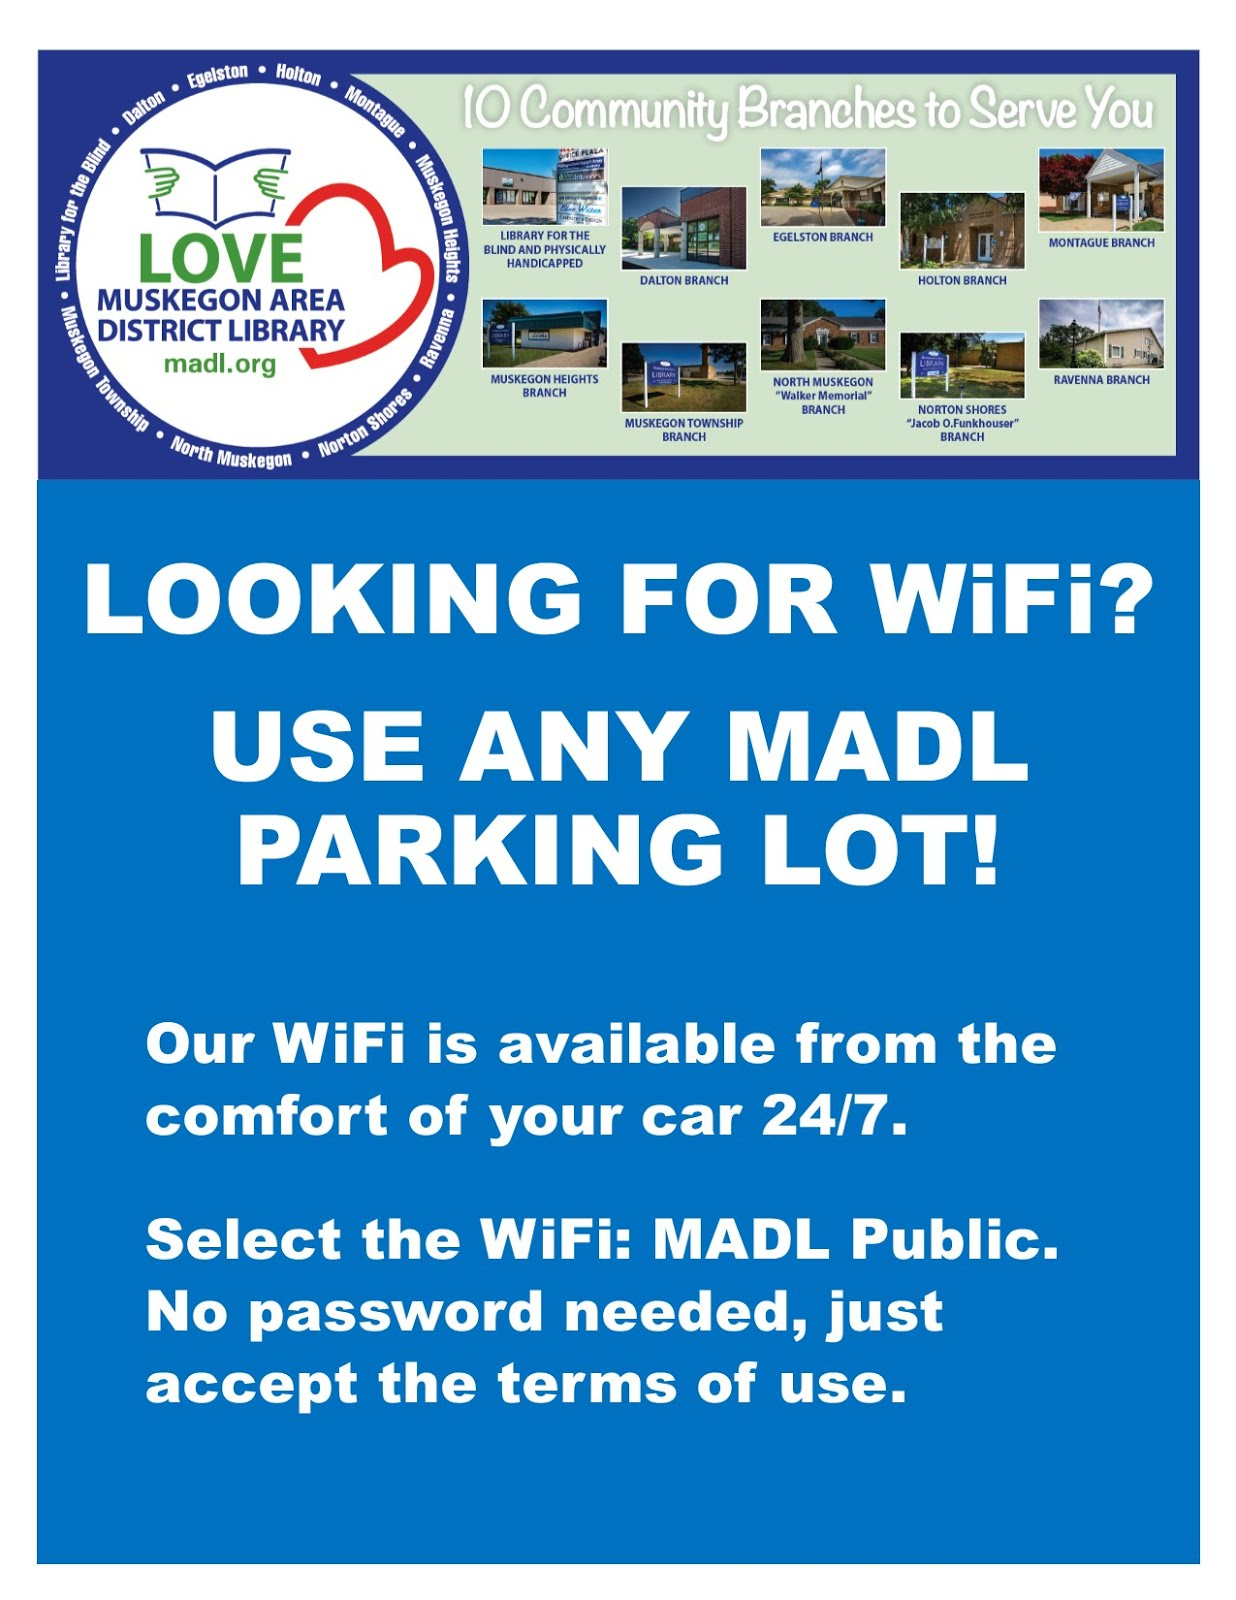 Free Wi-Fi from the MADL